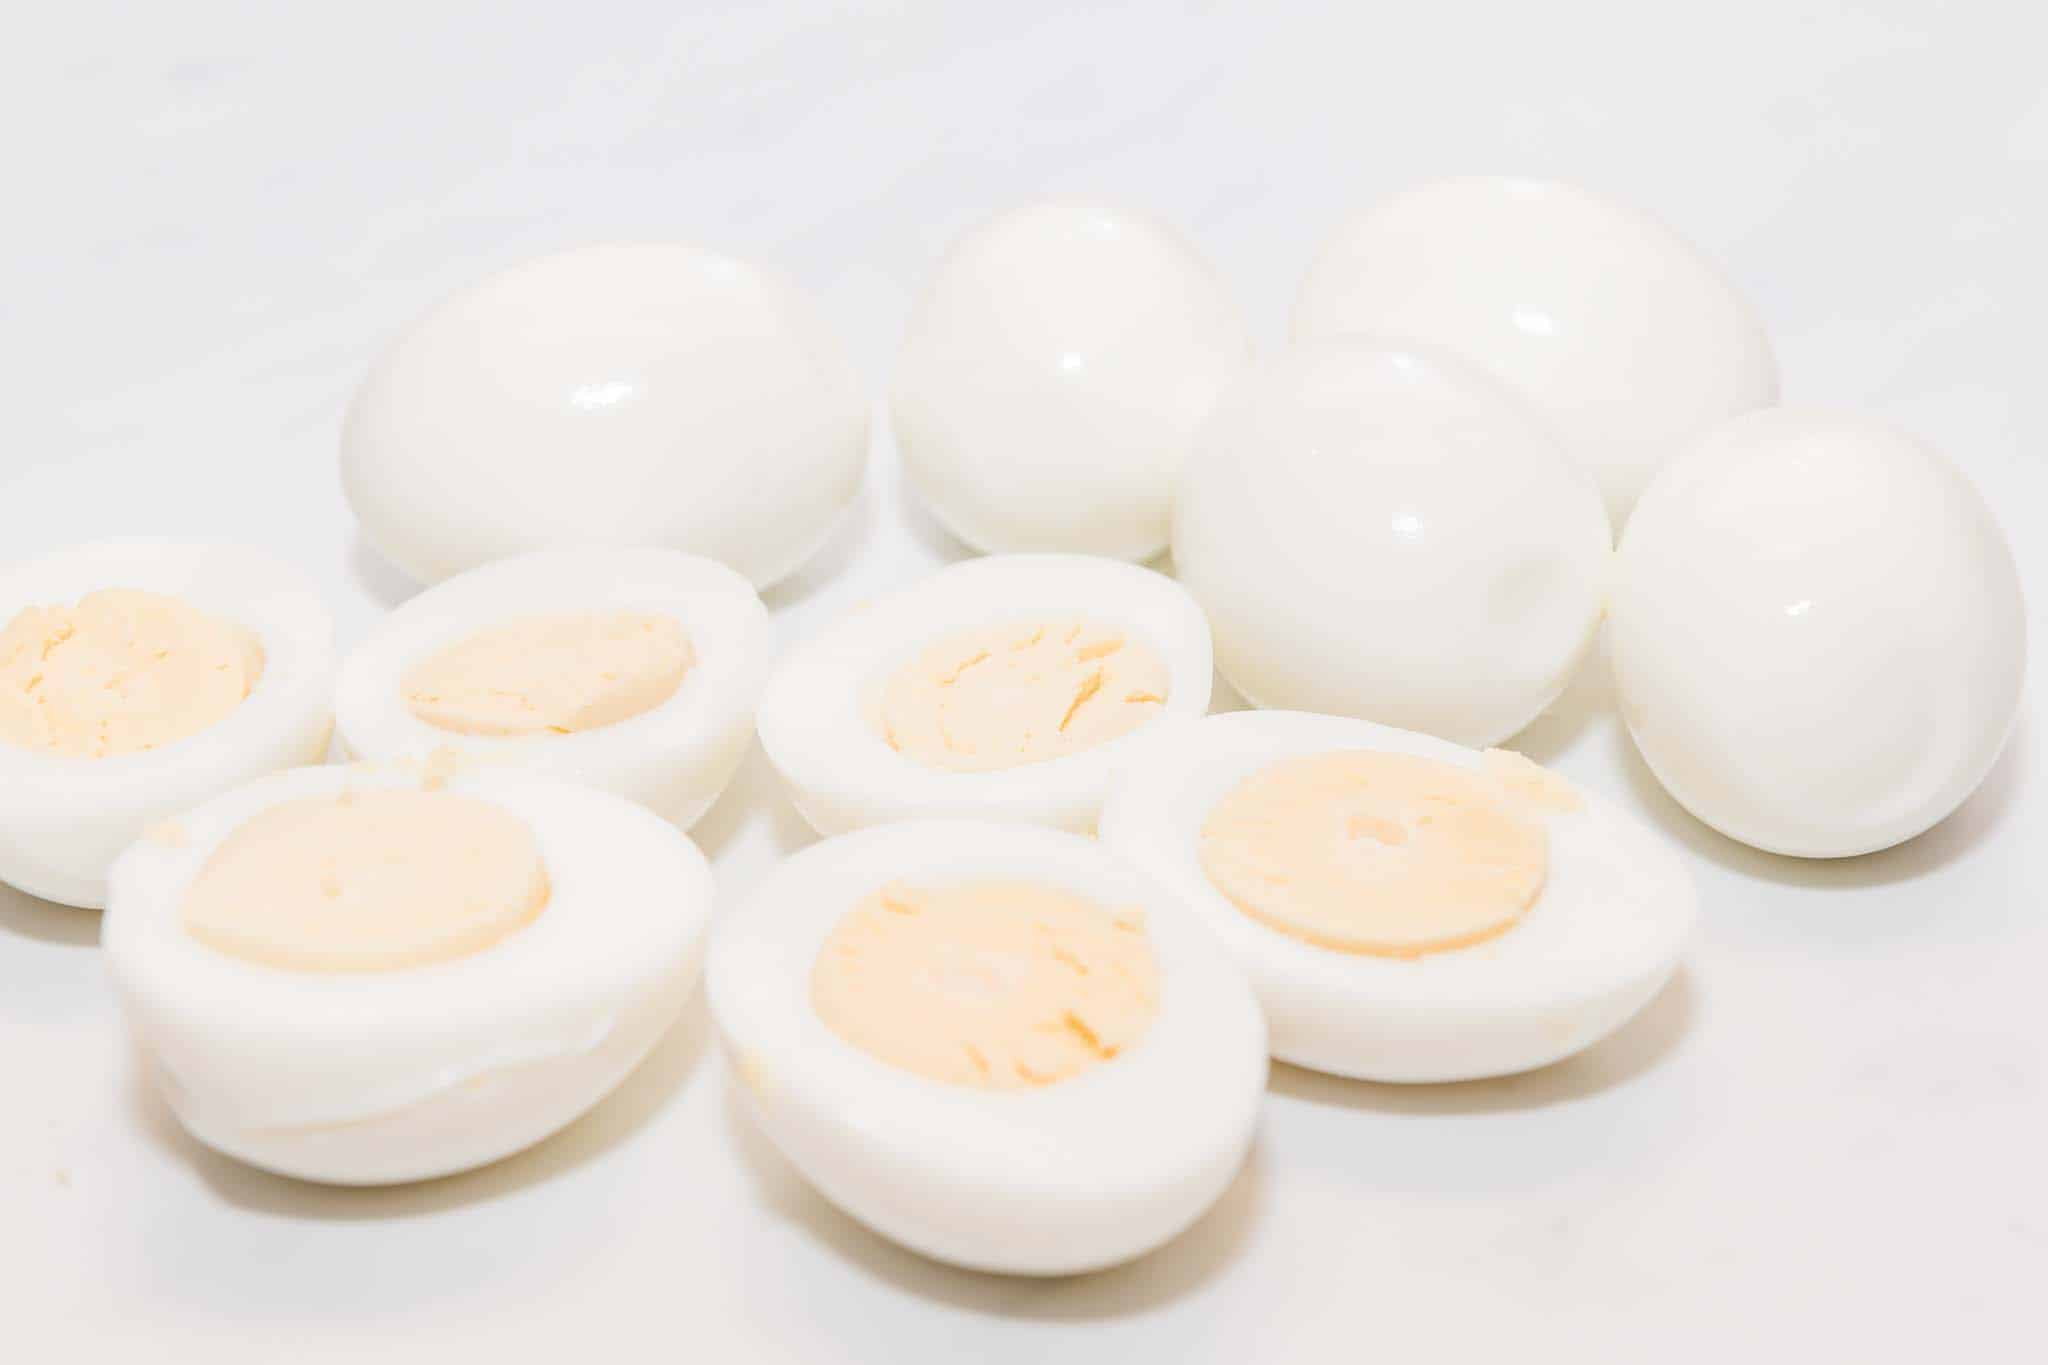 instant pot hard boiled eggs 5-5-5 method